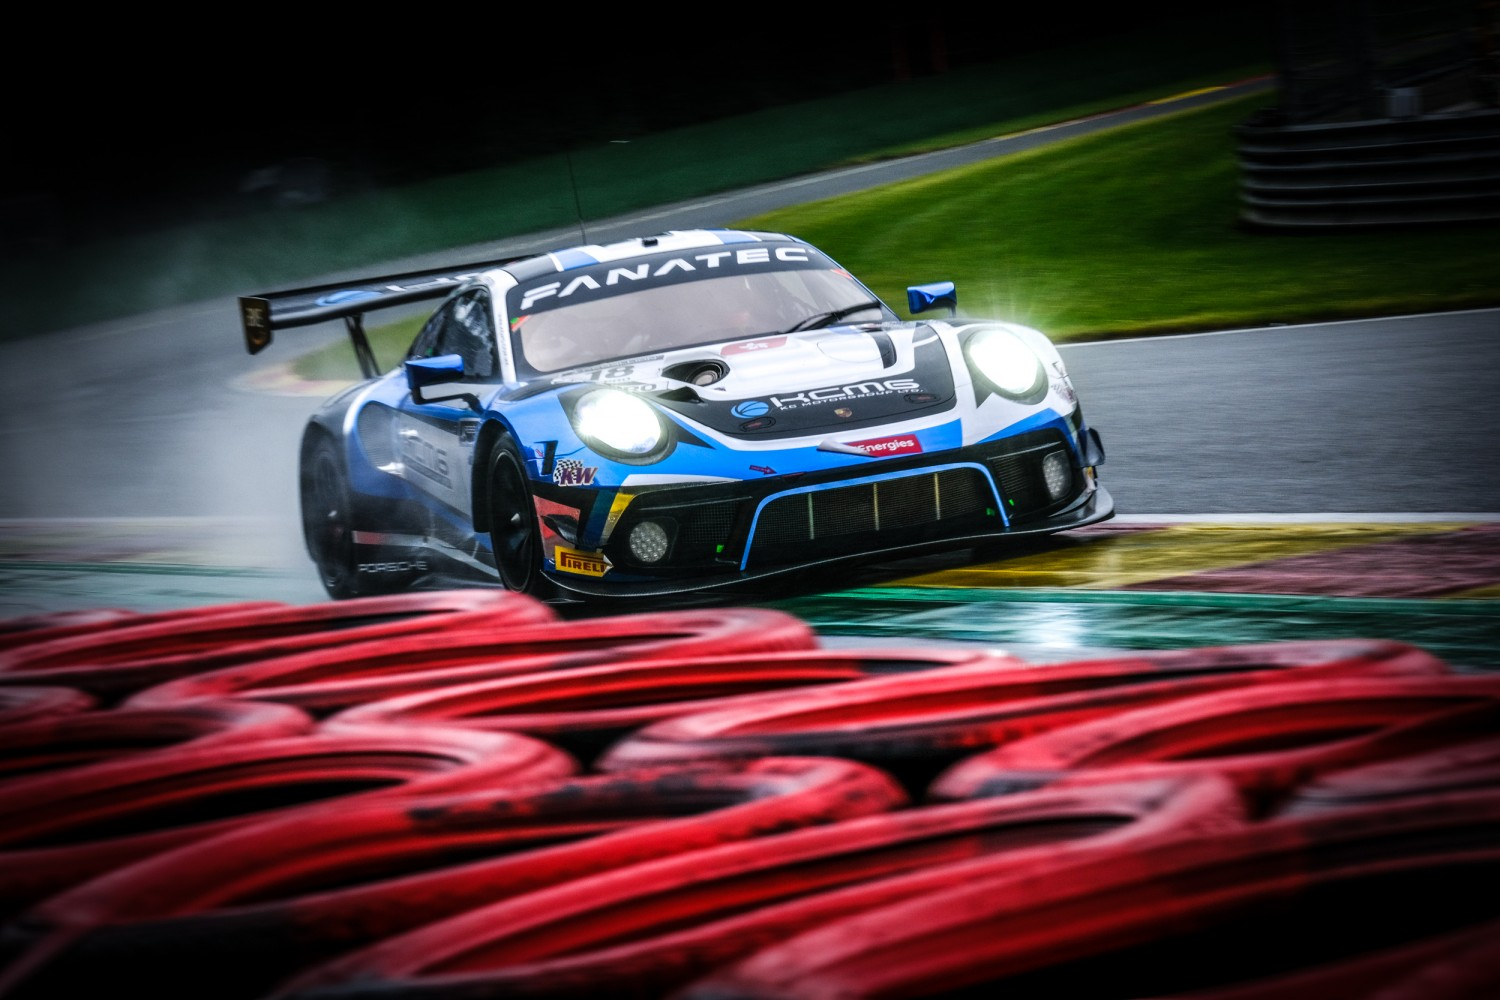 KCMG concludes opening day of official testing on top at Spa-Francorchamps